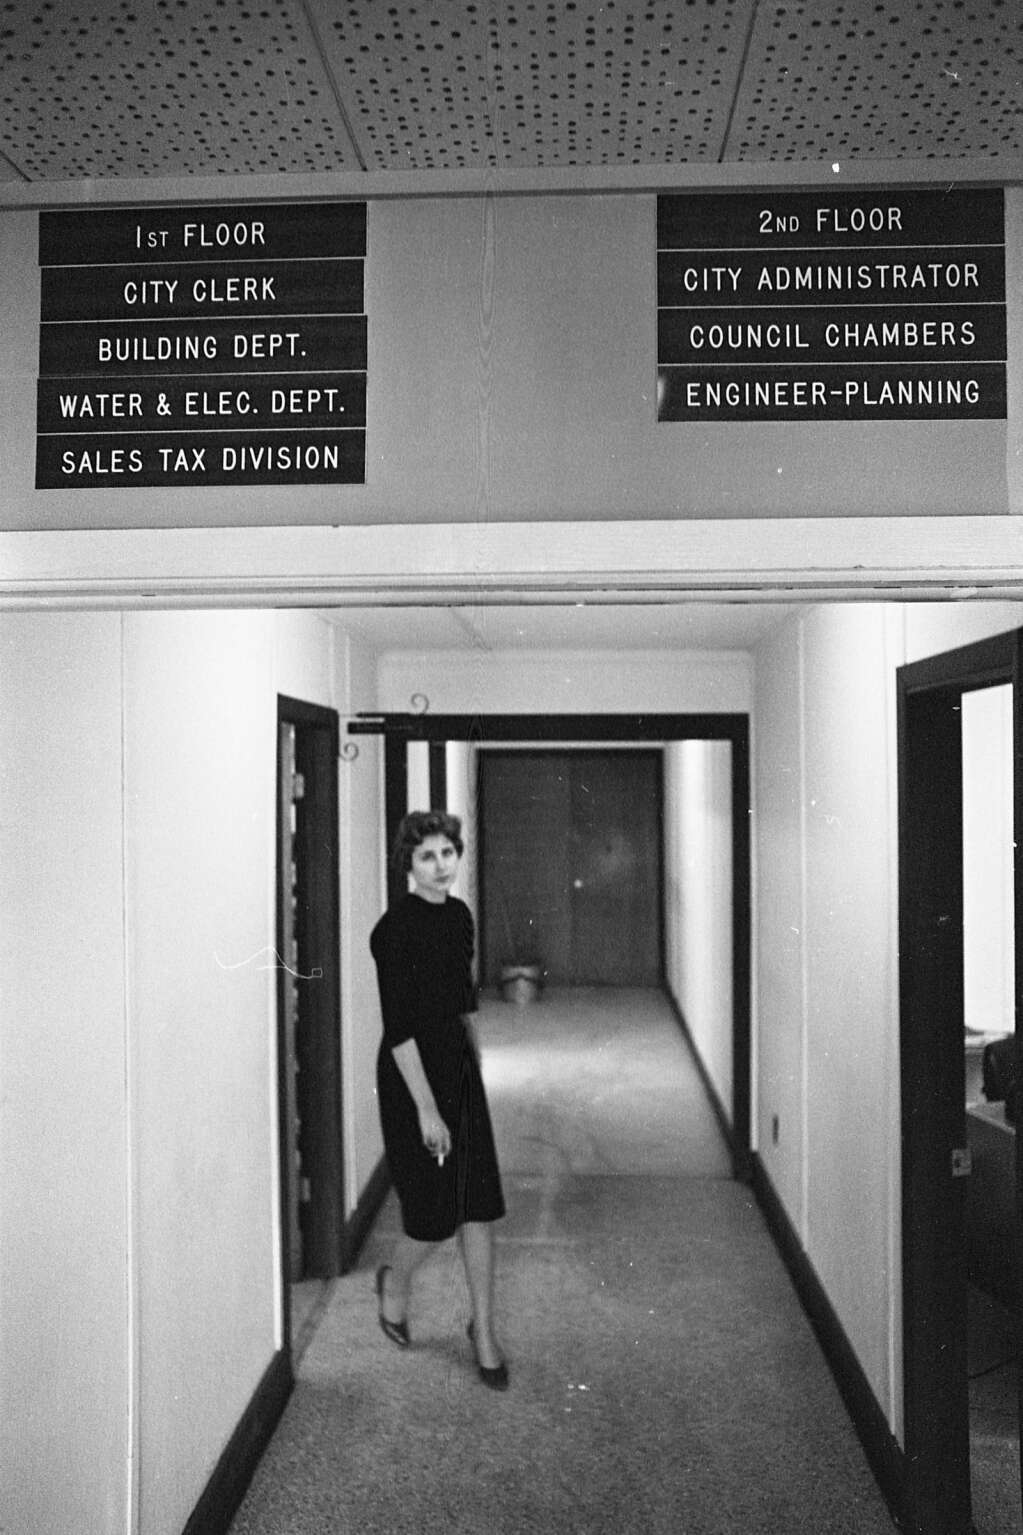 One b/w negative of a woman in City Hall (in the Armory Building), 1966. Related images are in the Aspen Illustrated News on February 3, 1966 (page 6-7). Aspen Historical Society, Hiser Collection